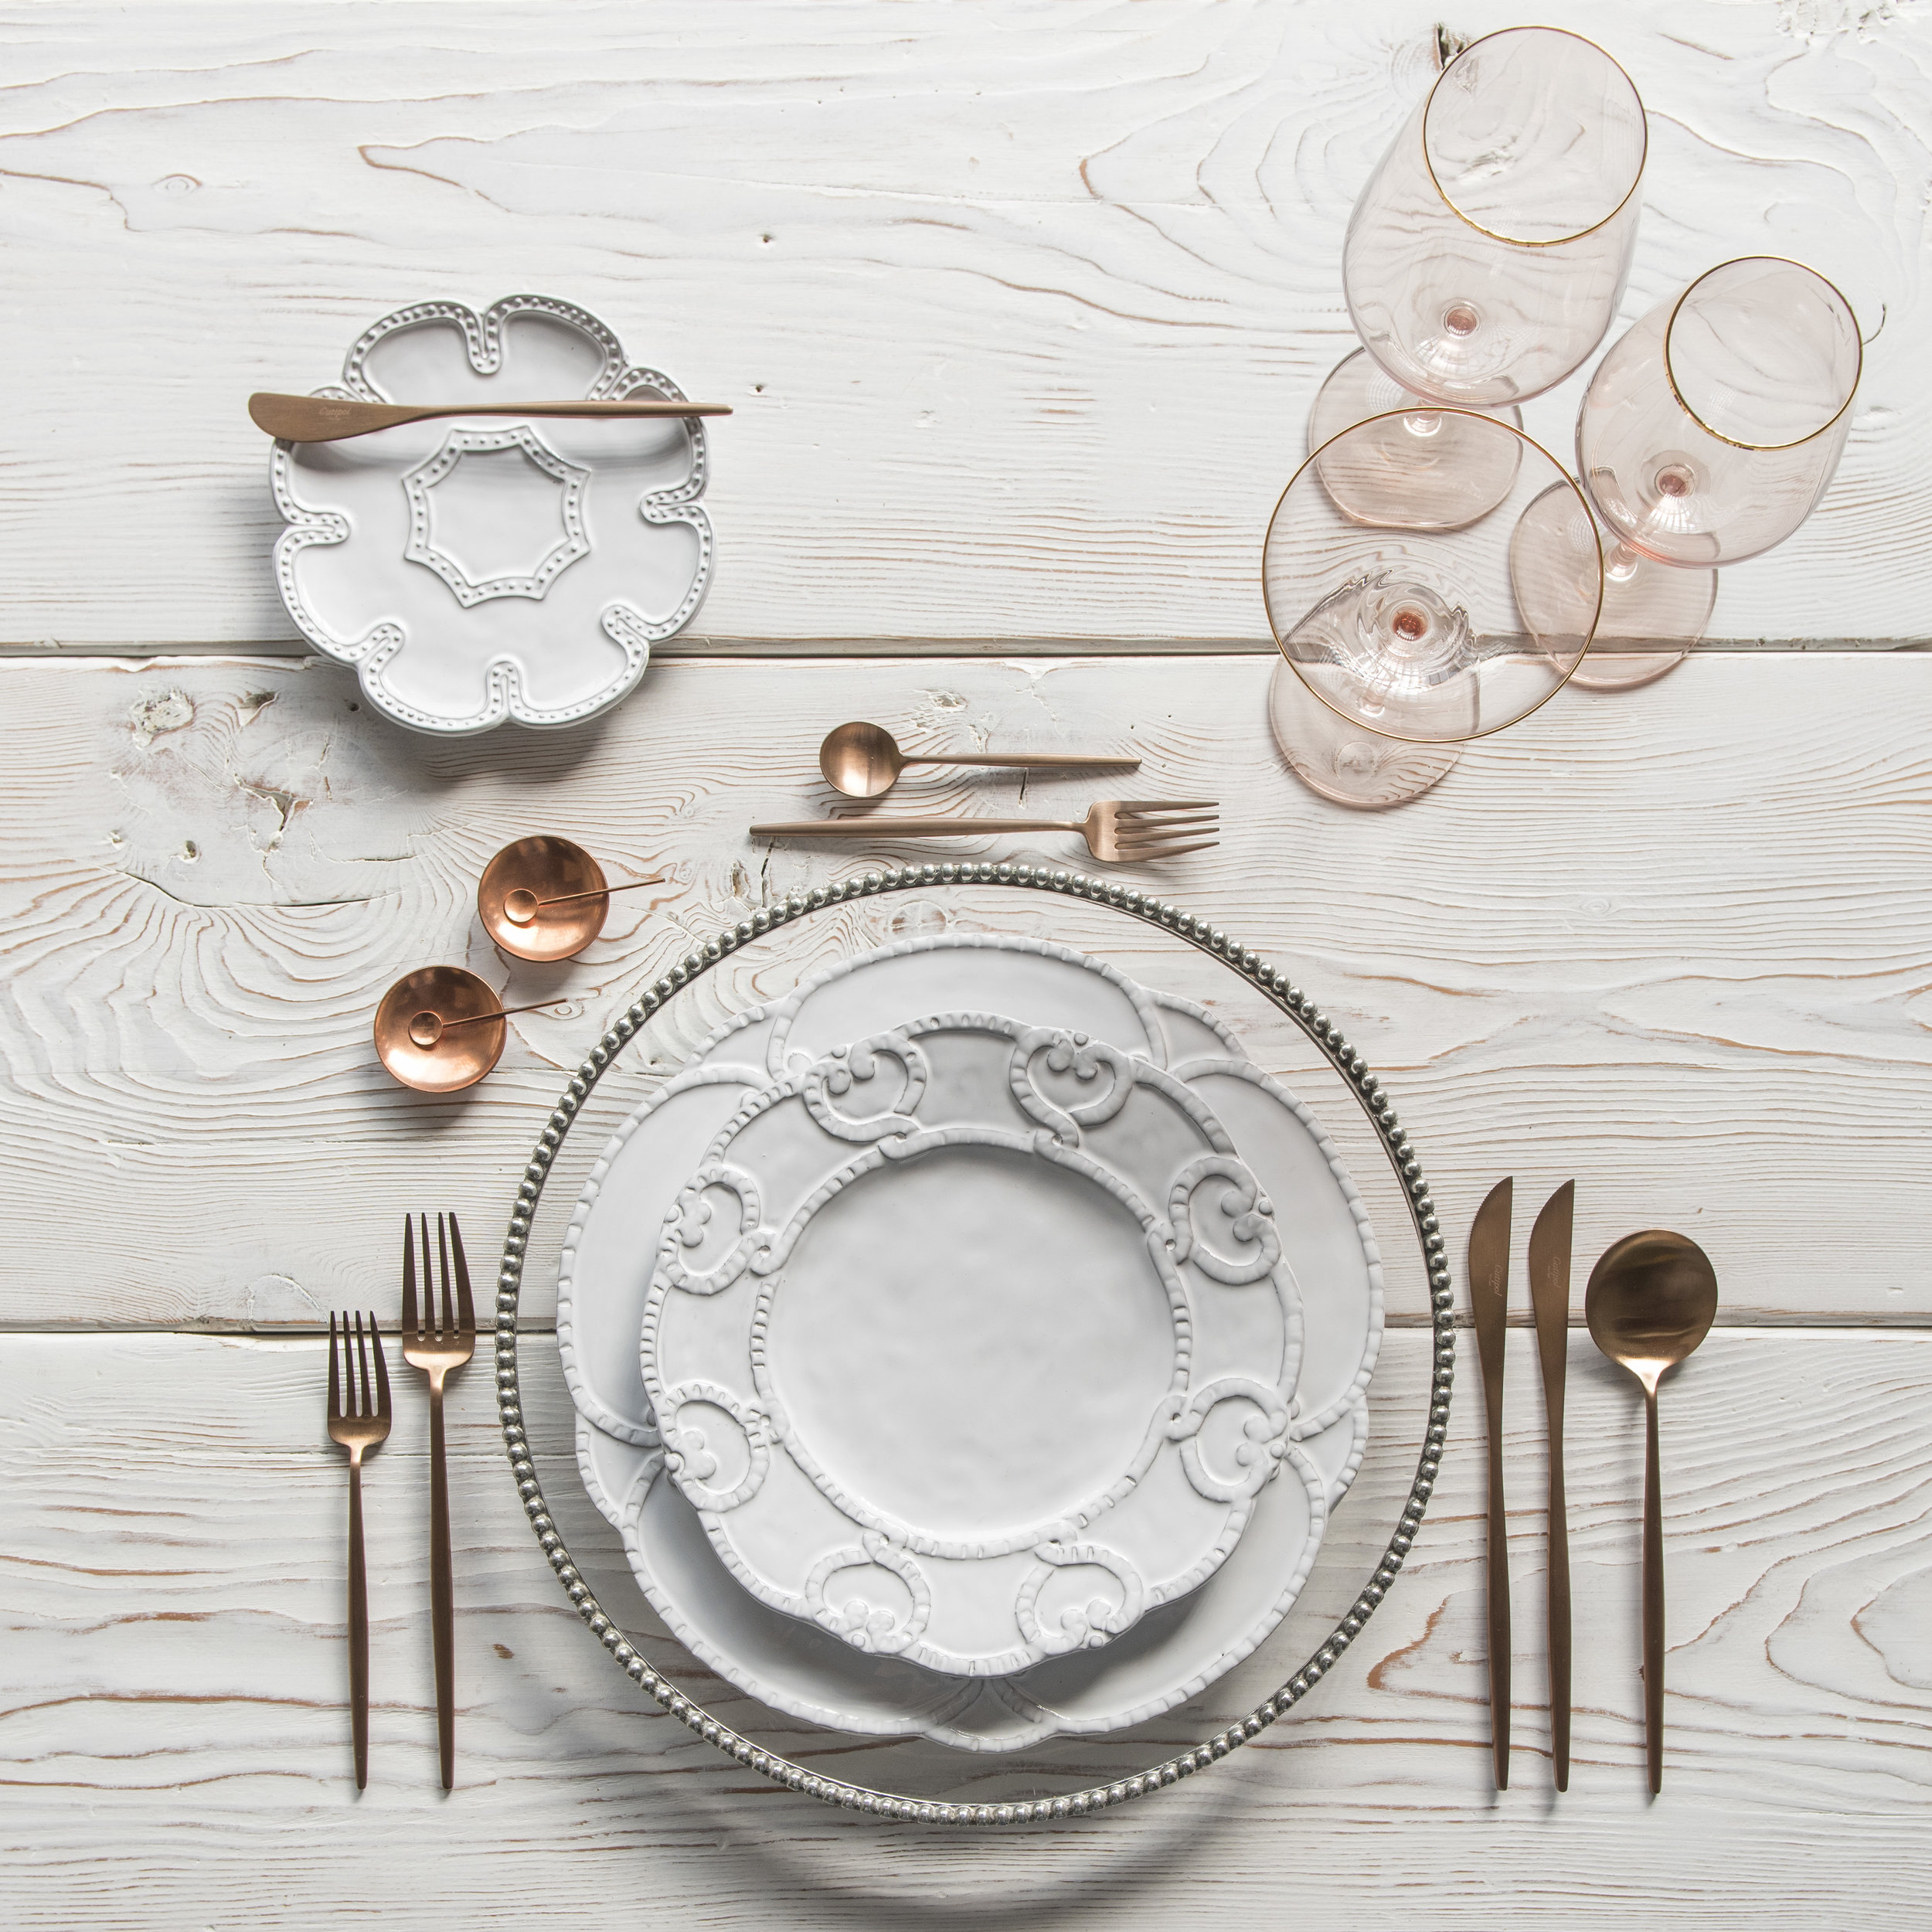 RENT: Pave Glass Chargers in Pewter + Signature Collection Dinnerware + Moon Flatware in Brushed Rose Gold + Bella 24k Gold Rimmed Stemware in Blush + Copper Salt Cellars + Tiny Copper Spoons  SHOP:Moon Flatware in Brushed Rose Gold + Bella 24k Gold Rimmed Stemware in Blush + Copper Salt Cellars + Tiny Copper Spoons